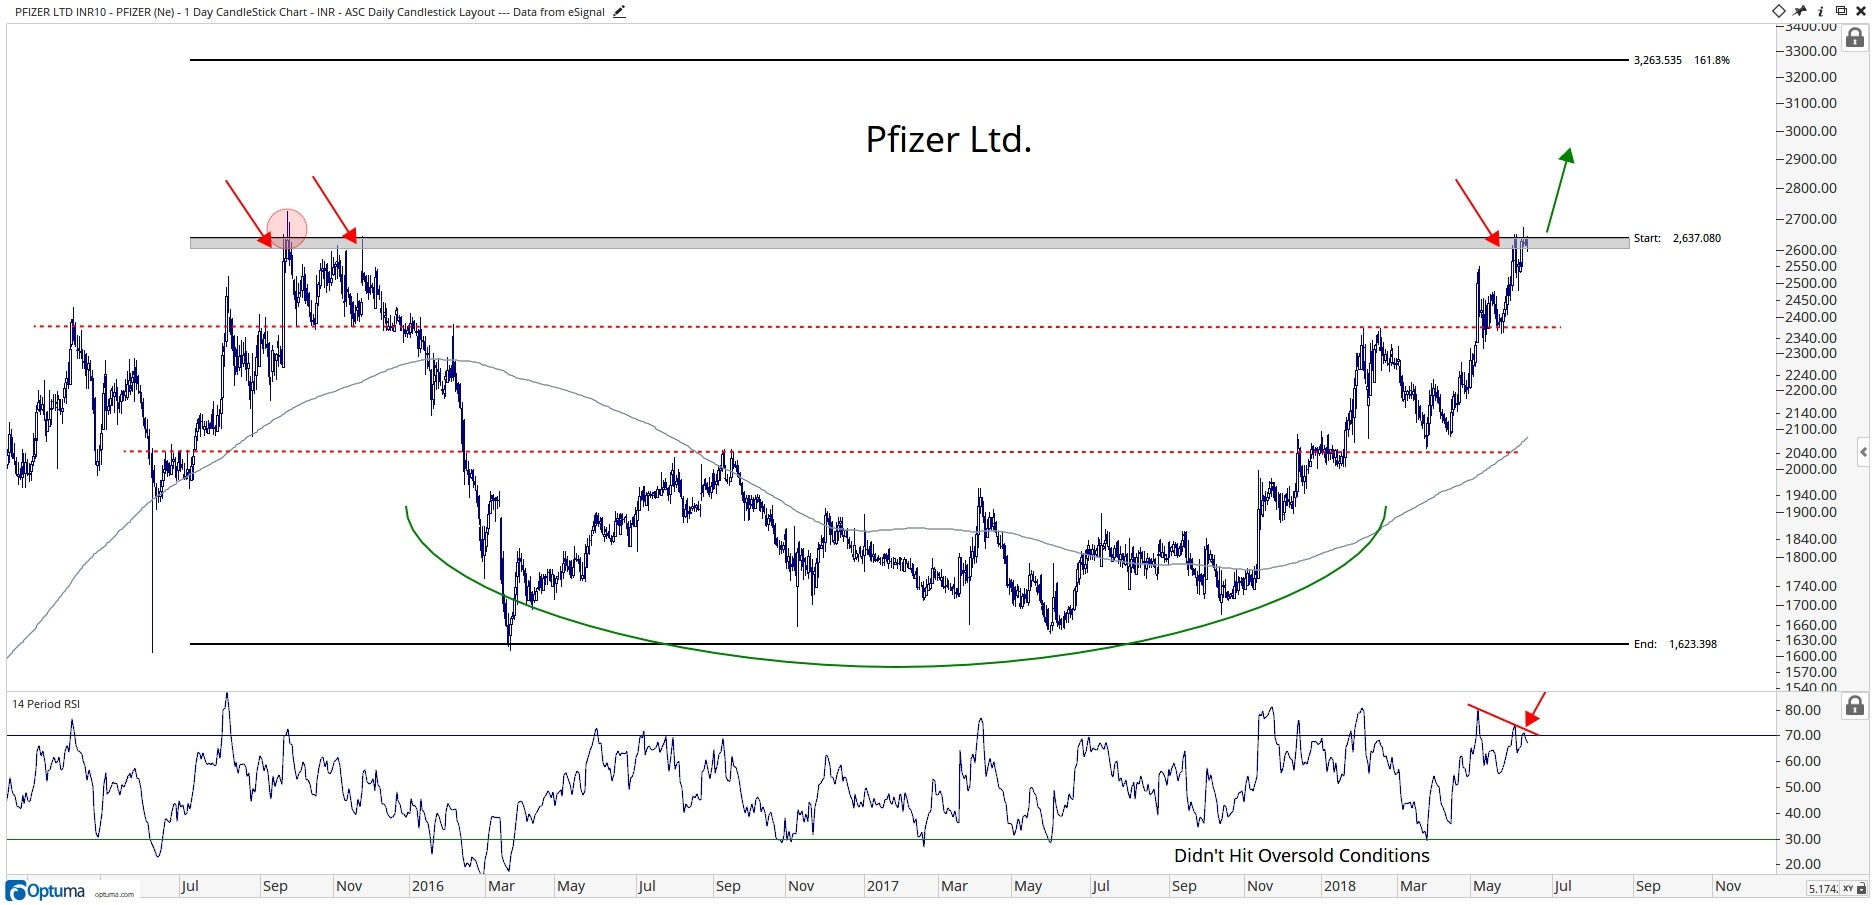 Technical chart showing the performance of Pfizer Limited (PFIZER.BO) stock